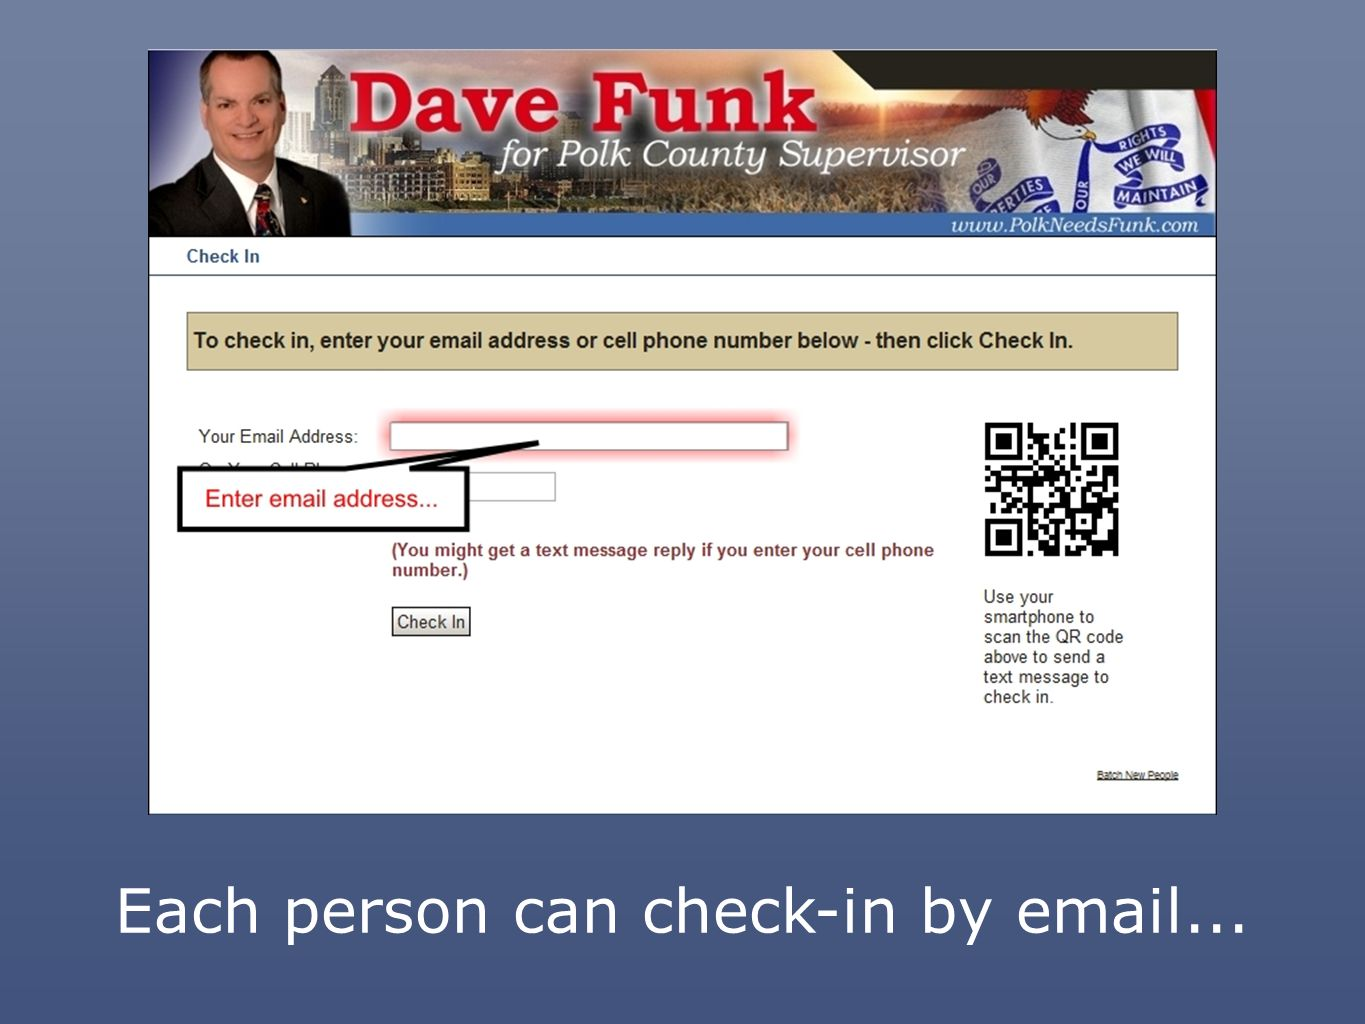 Each person can check-in by email...